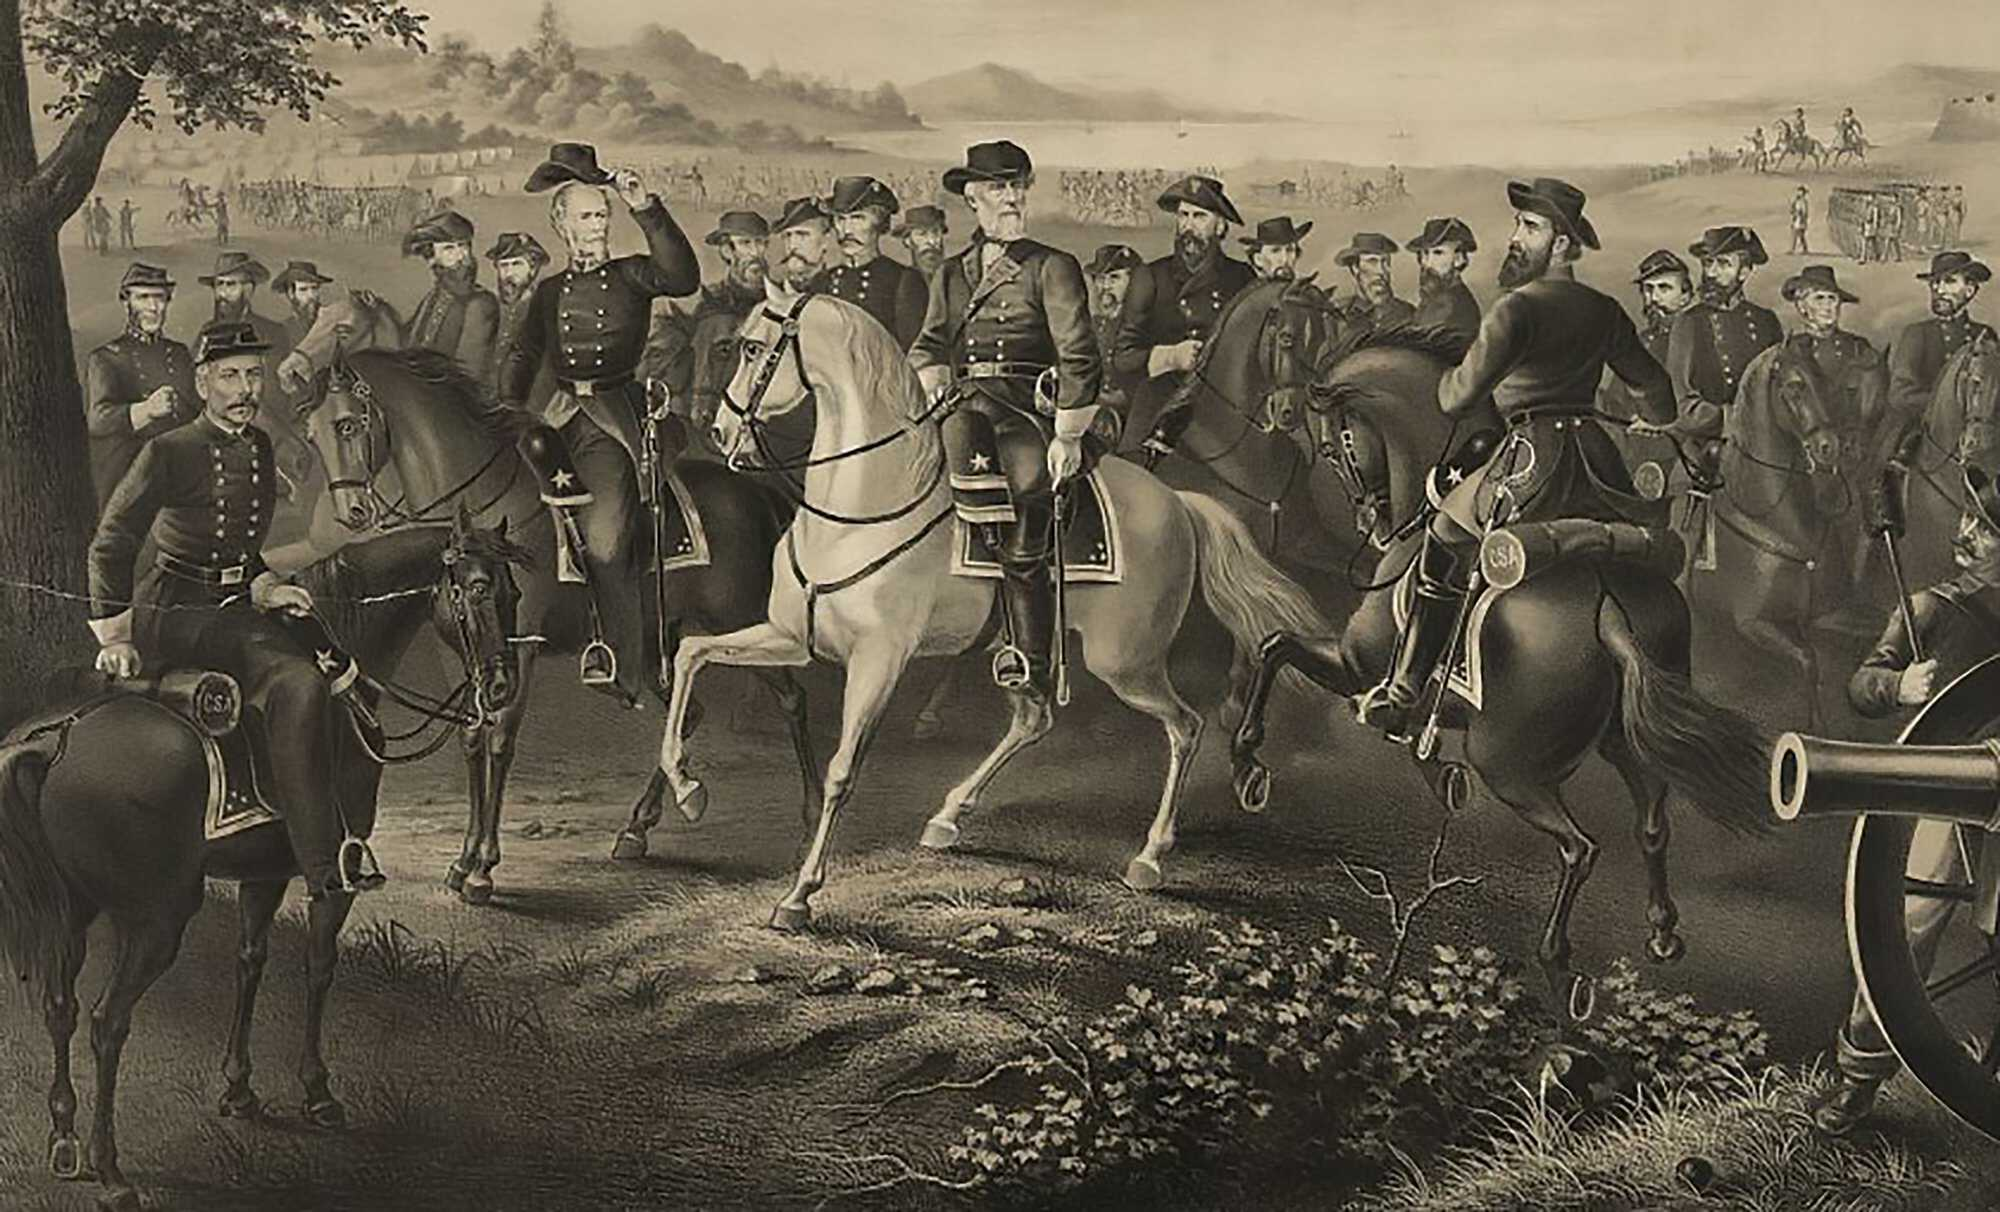 Lee-Surrender-Generals-Robert-E.-Lee-and-21-Confederate-generals,-all-on-horseback-LOC-1867.jpg